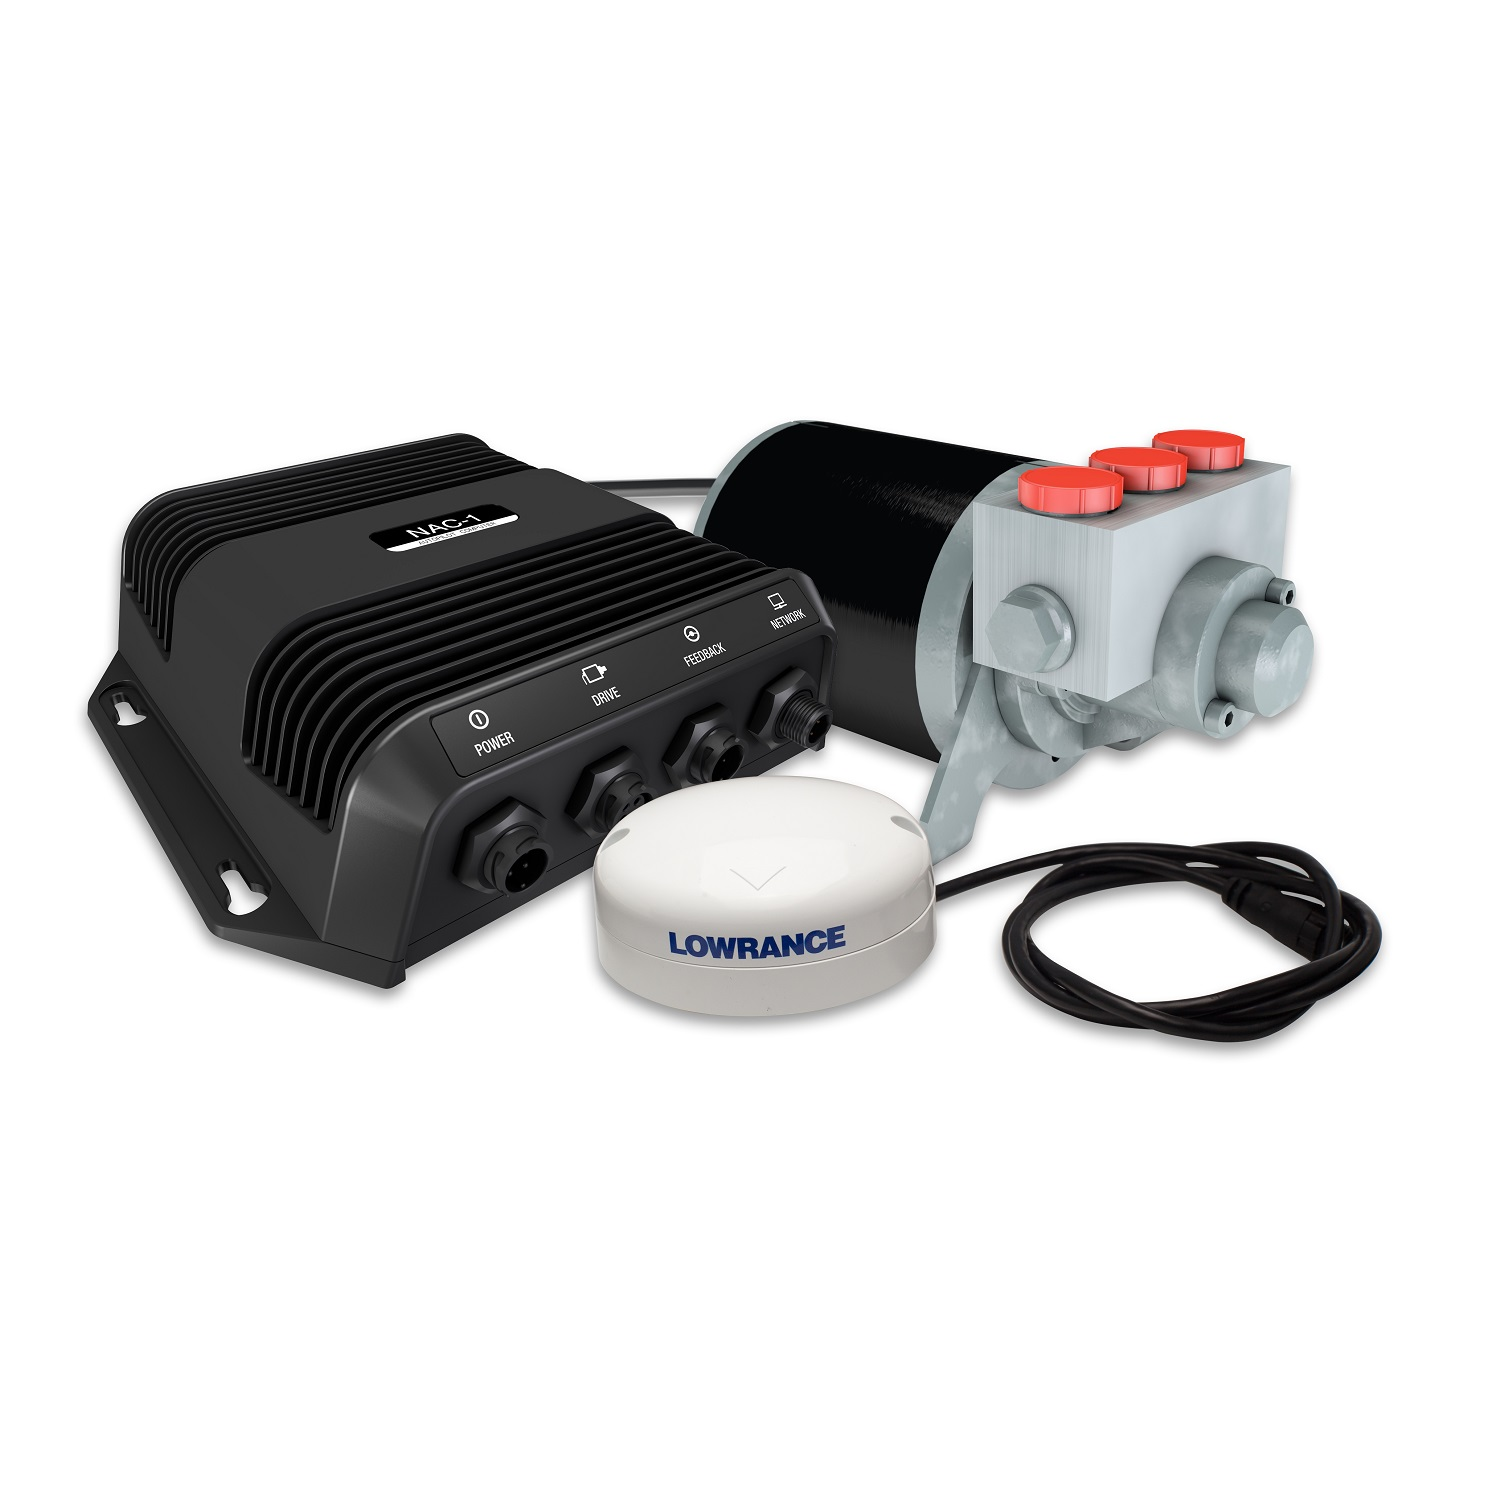 Lowrance 000-11748-001 Outboard Autopilot System for Hydraul